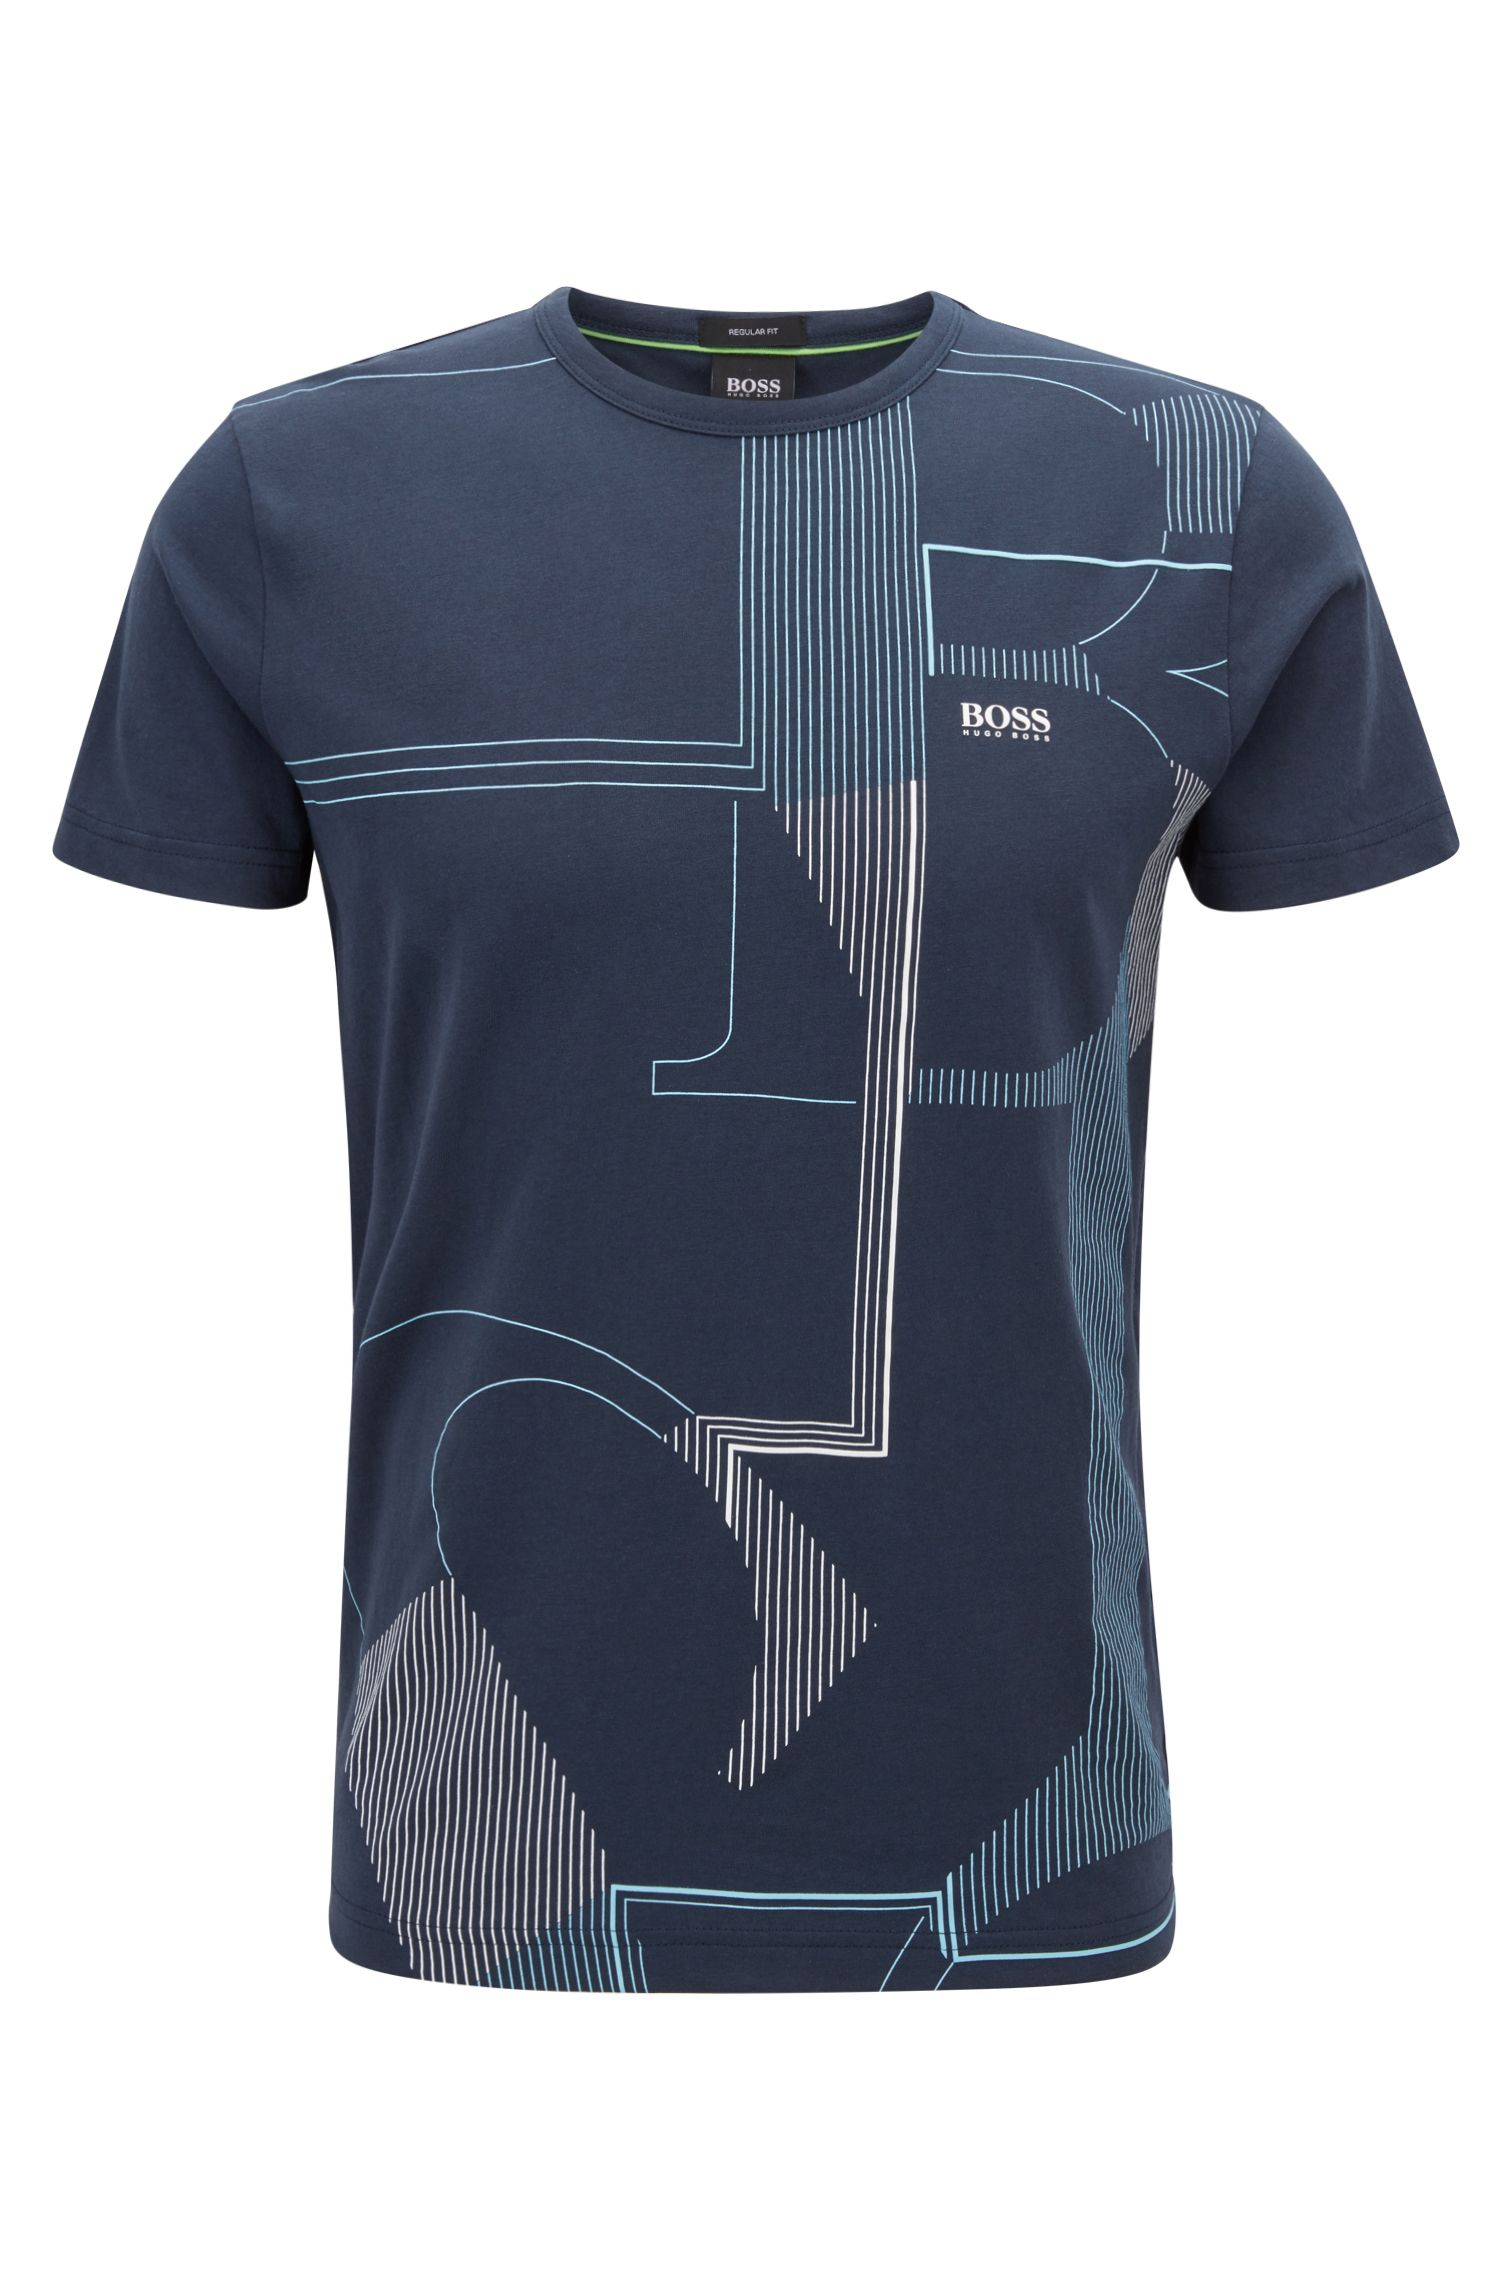 Crew-neck T-shirt in single jersey with logo artwork, Dark Blue